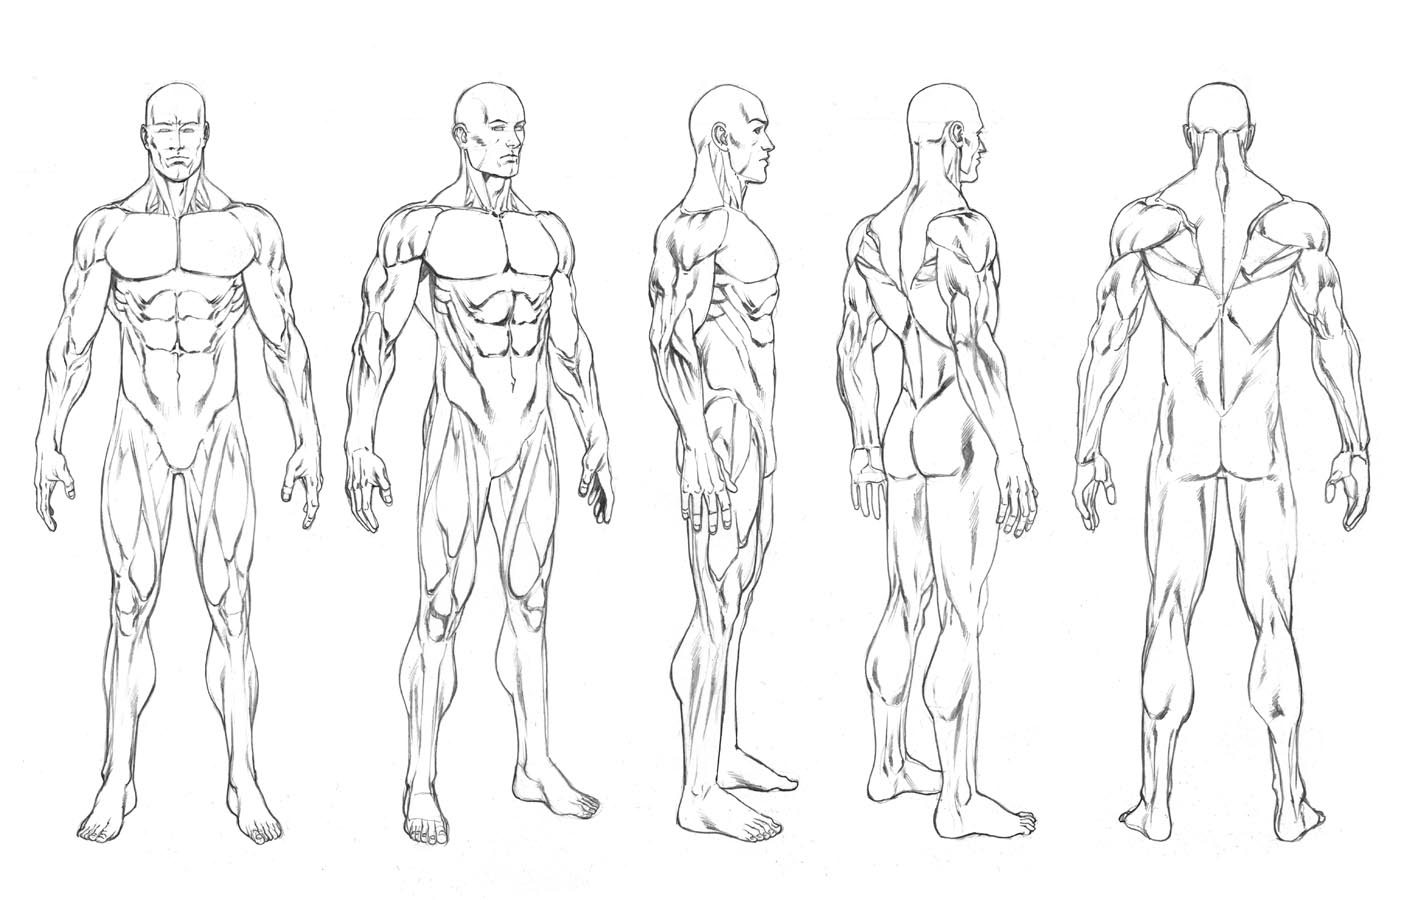 Male Body Outline Drawing At Getdrawings Com Free For